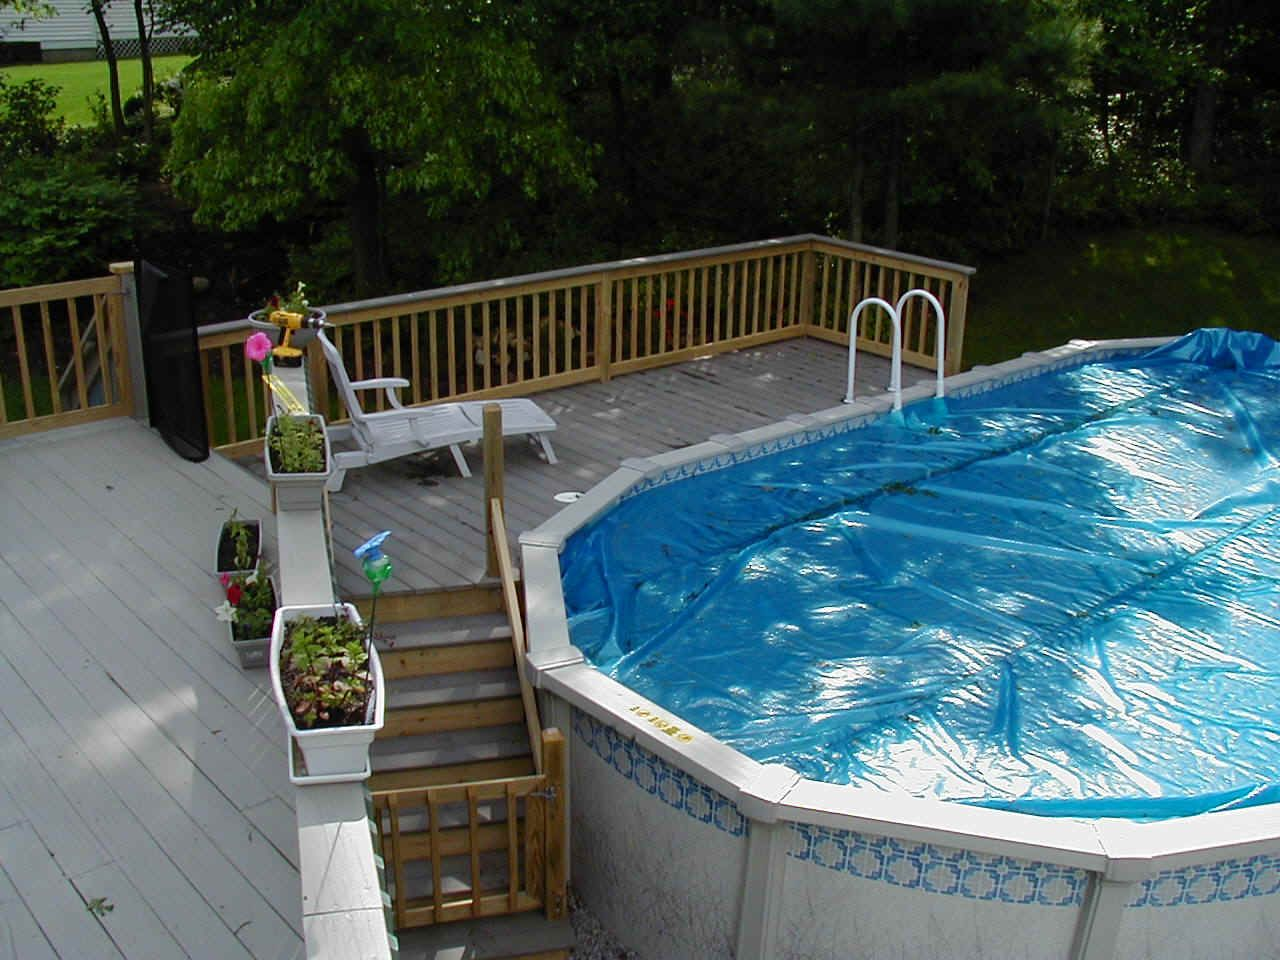 Luxury Backyard Swimming Poolsoval Above Ground Pool Deck wood deck plans, diy deck plans, gazebo building plans | house